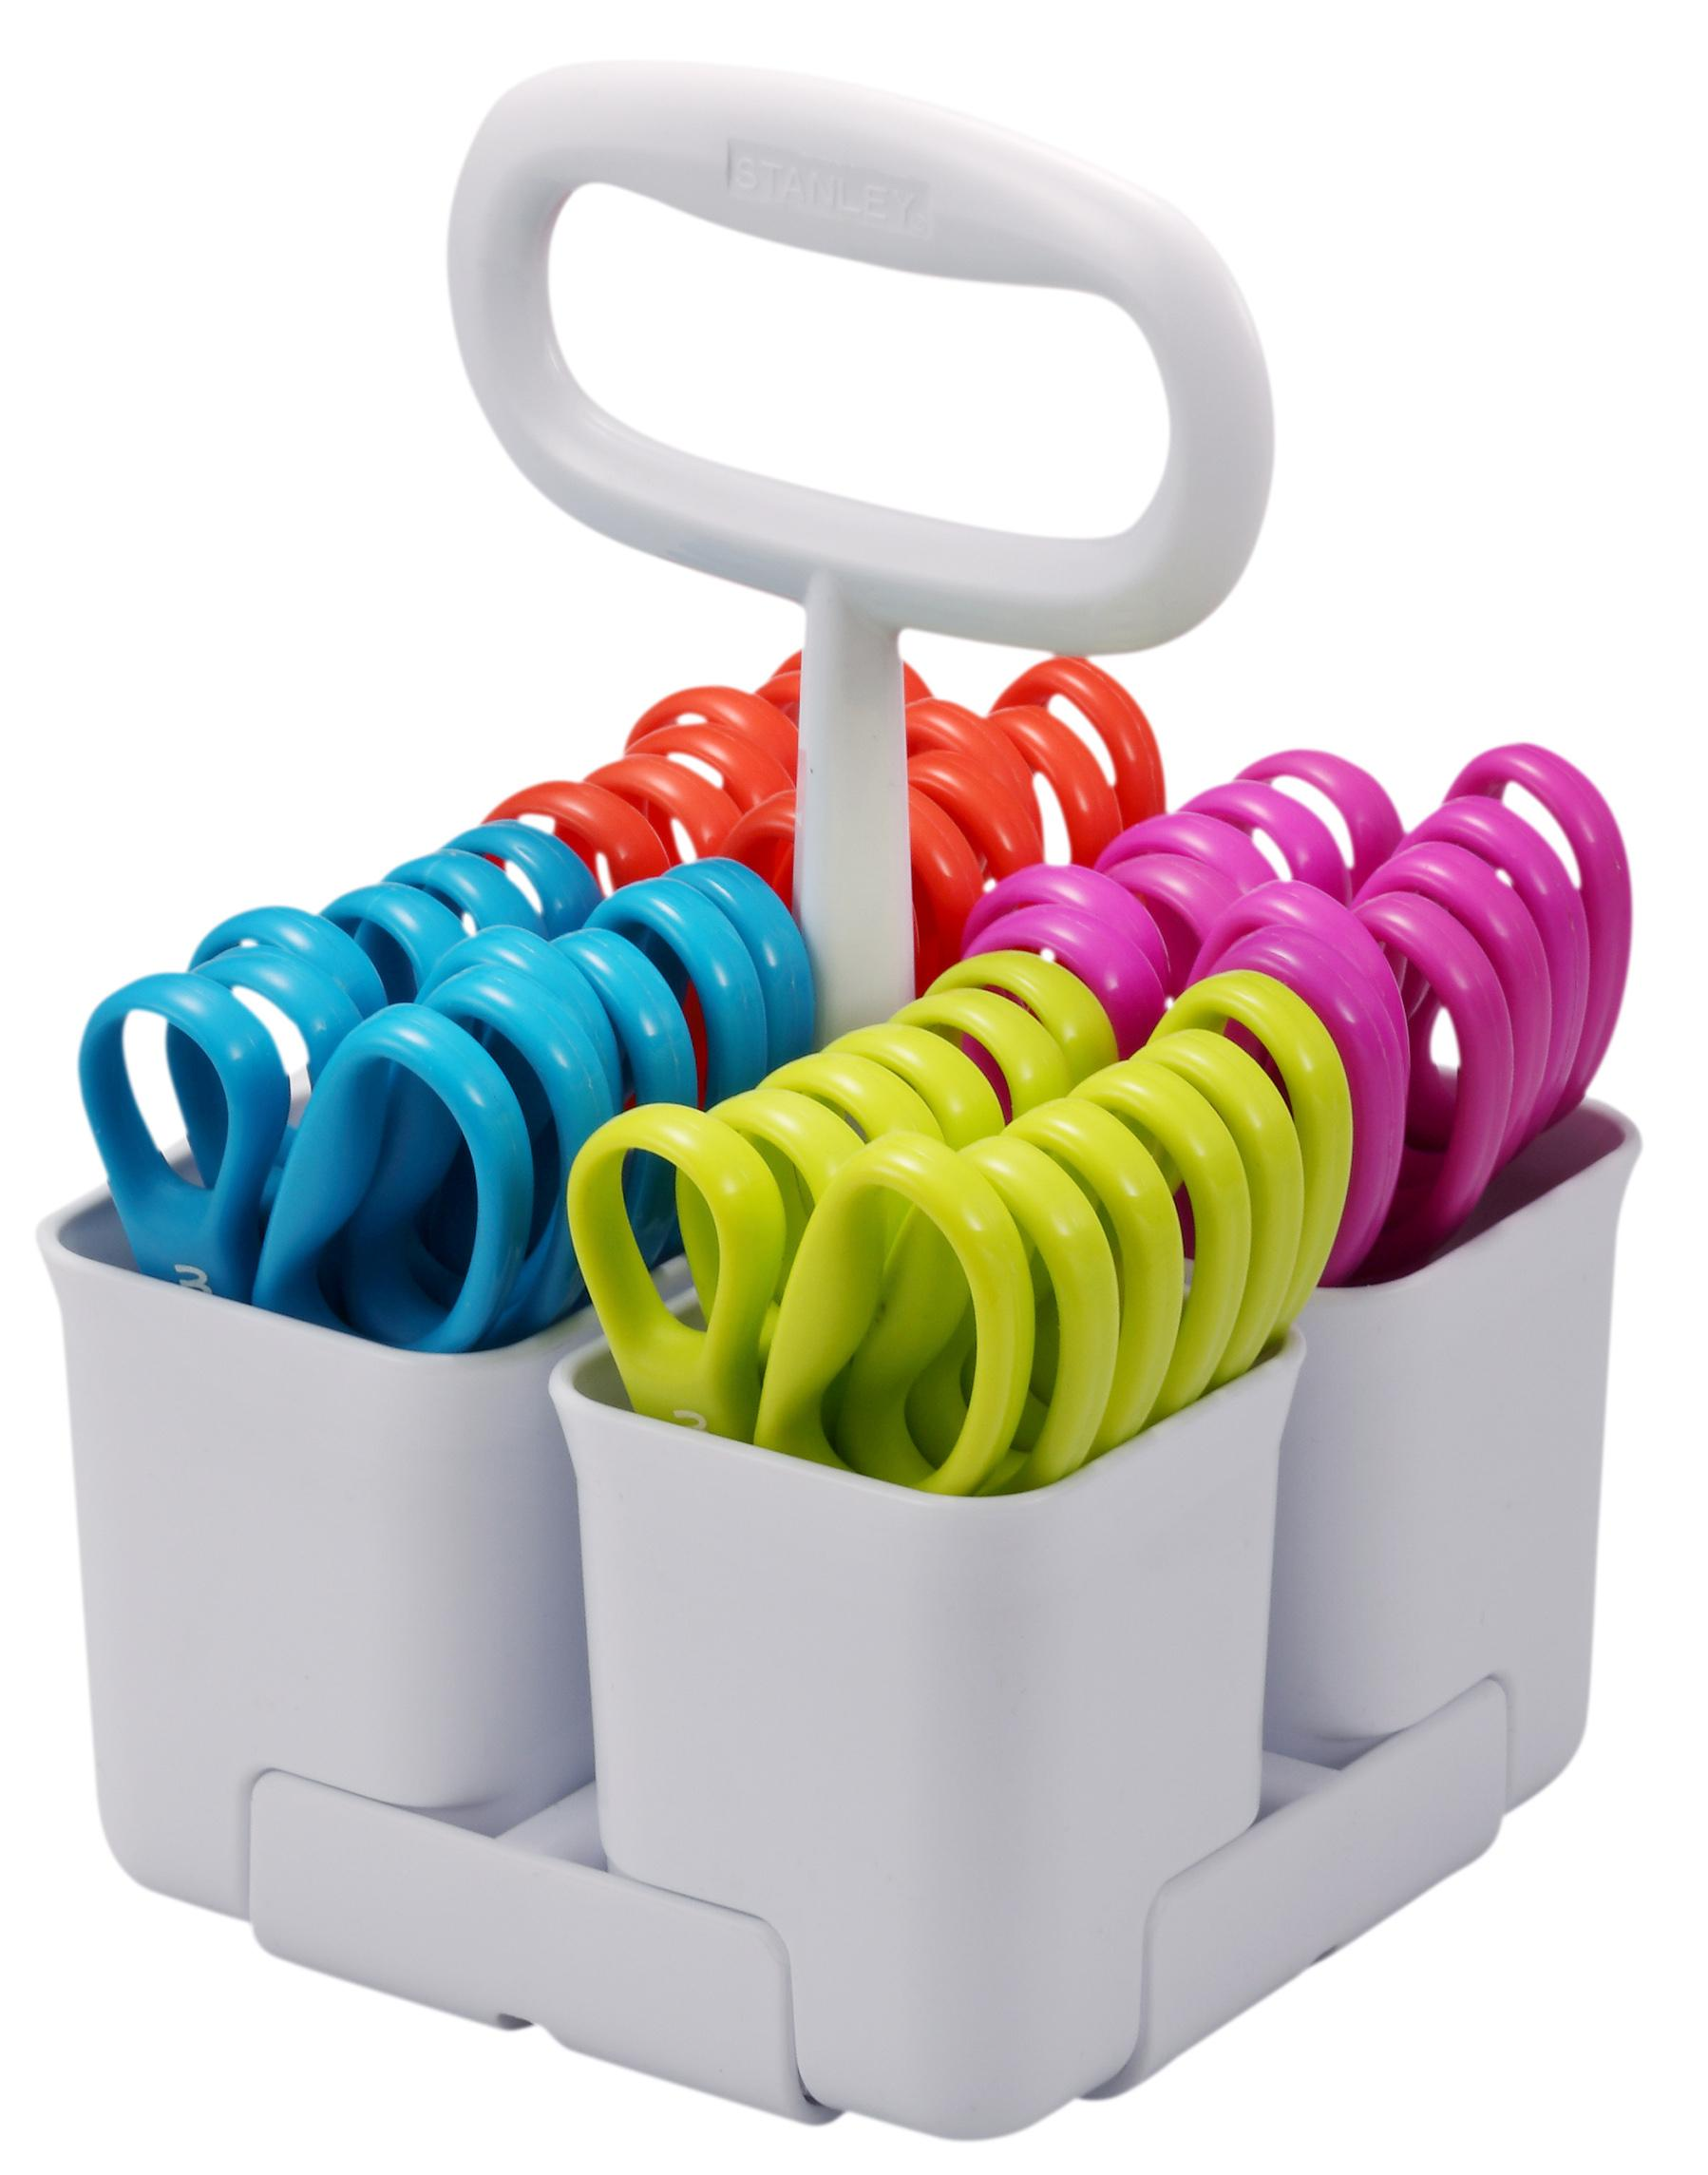 Amazon.com: Stanley Removable 4 Cup Scissor Caddy and